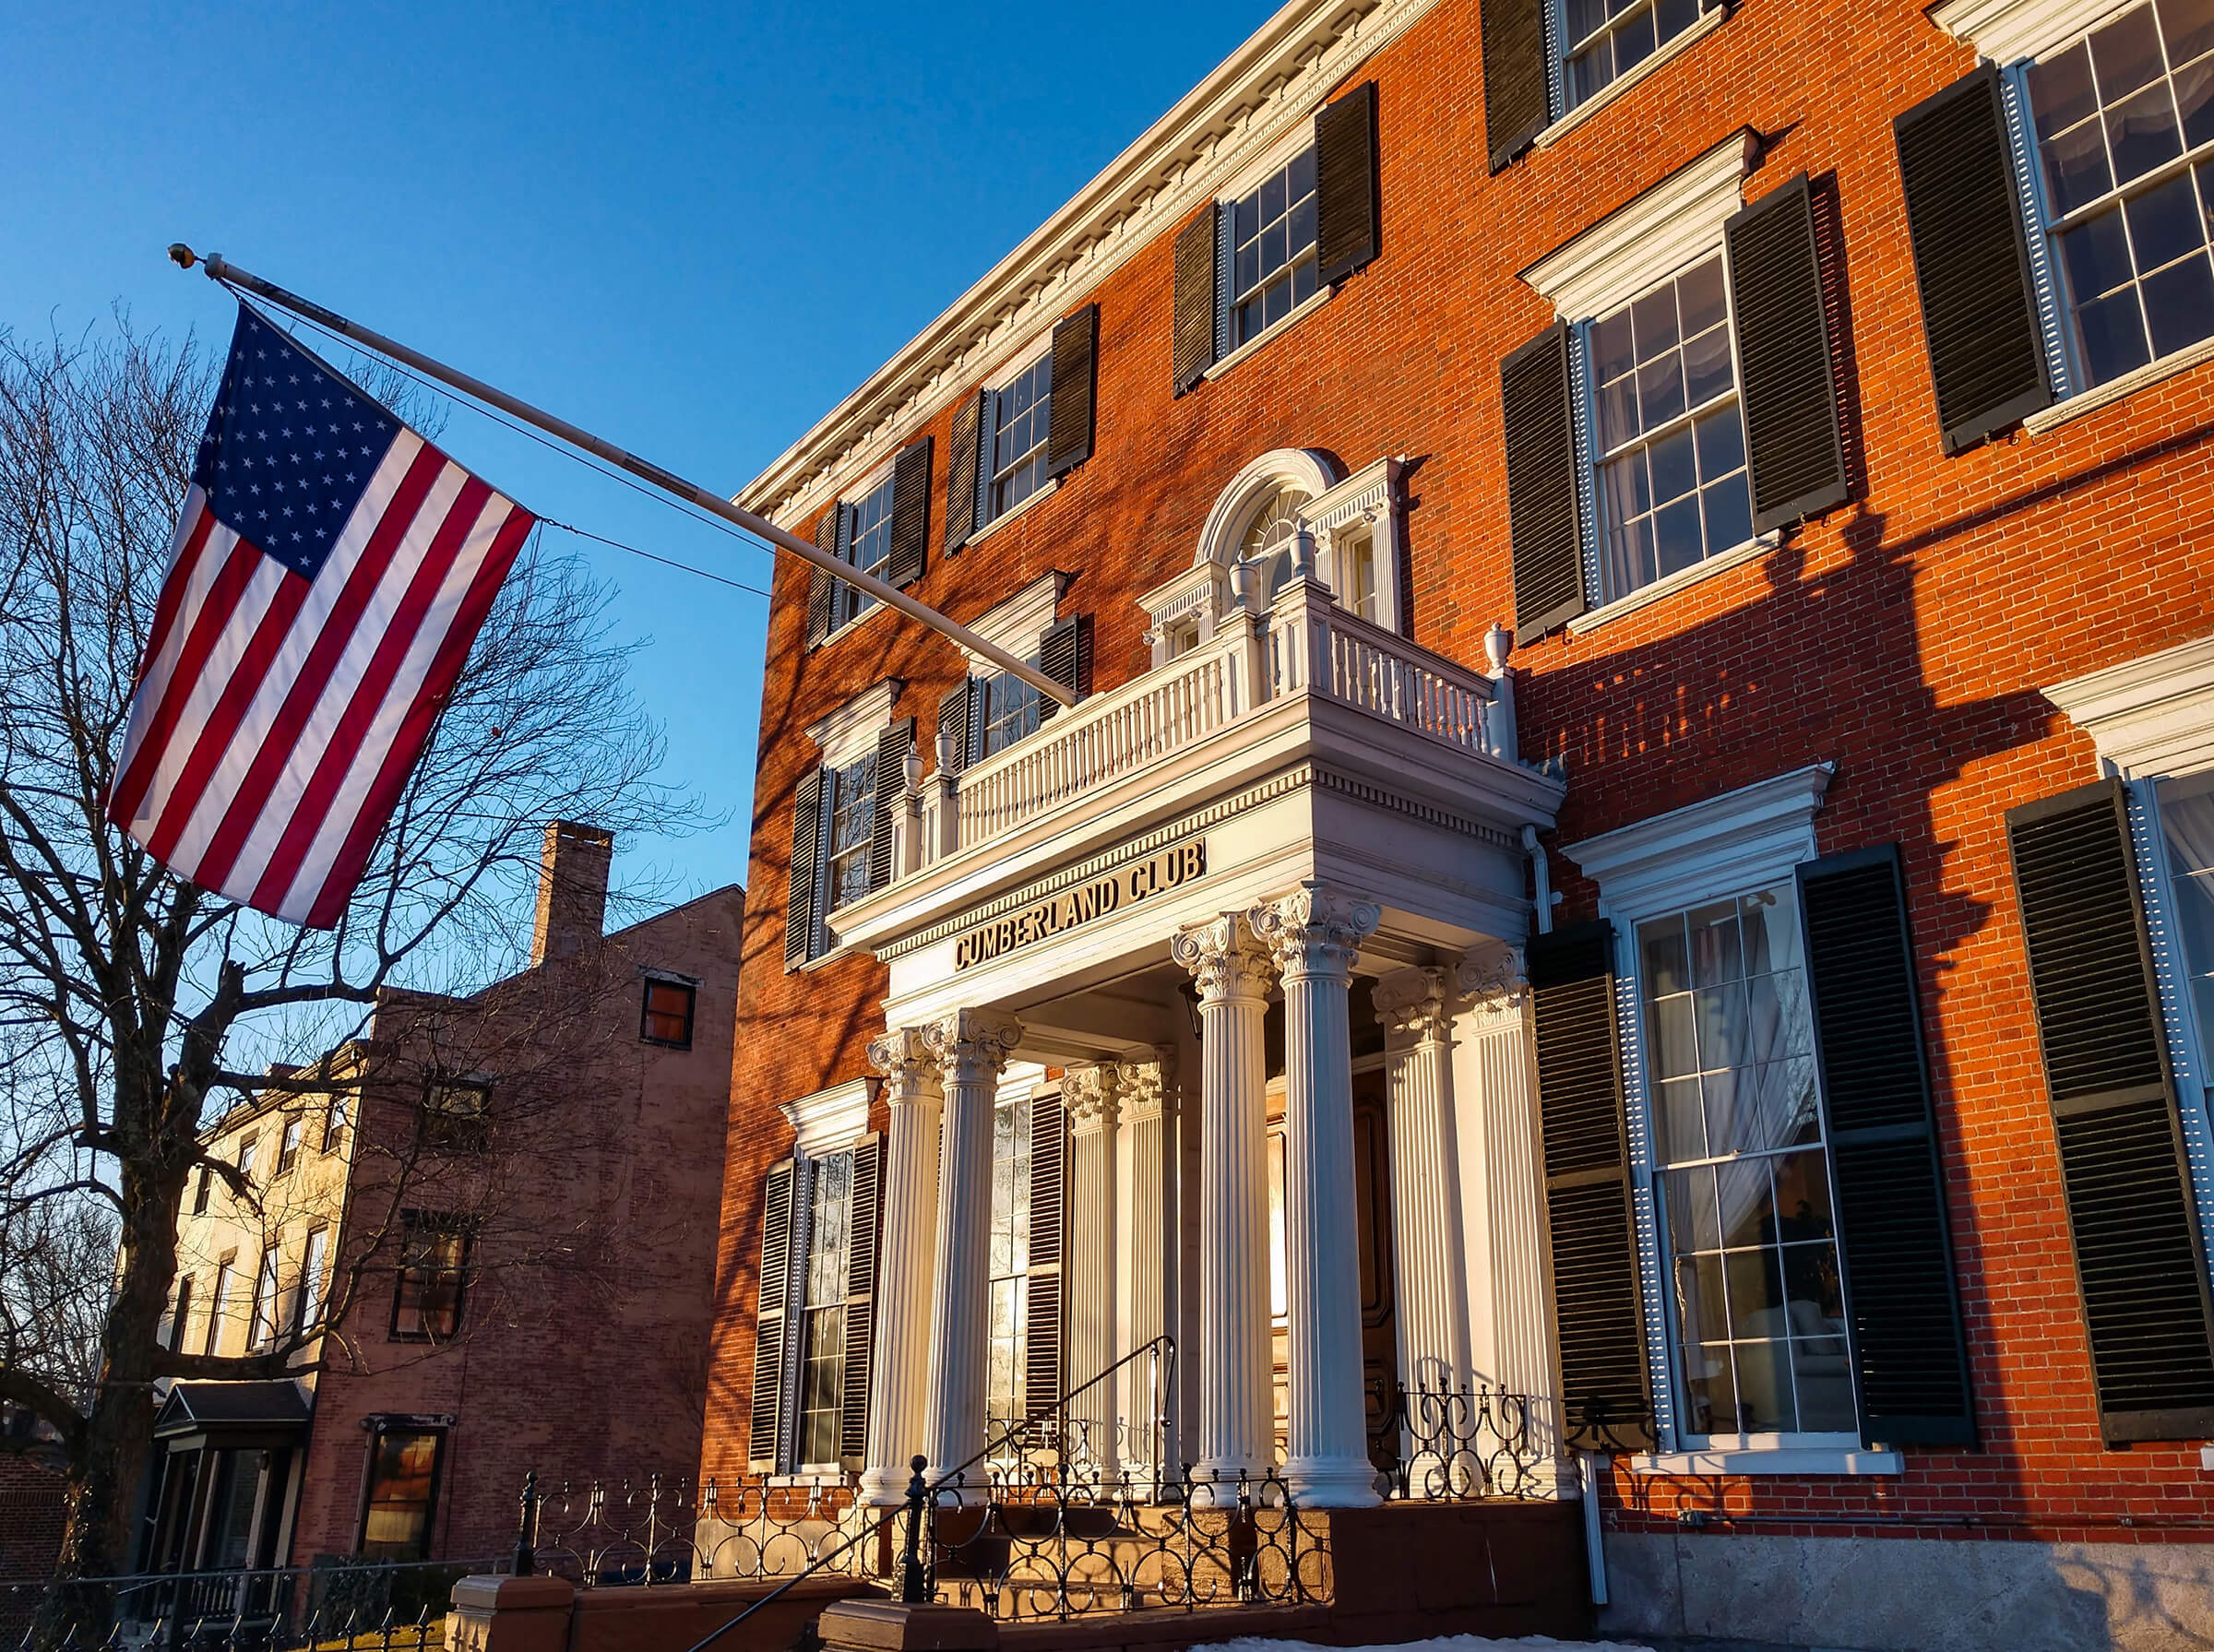 Architectural Photography of the Cumberland Club, American flag hangs on the outside in the early morning light in Portland, Maine